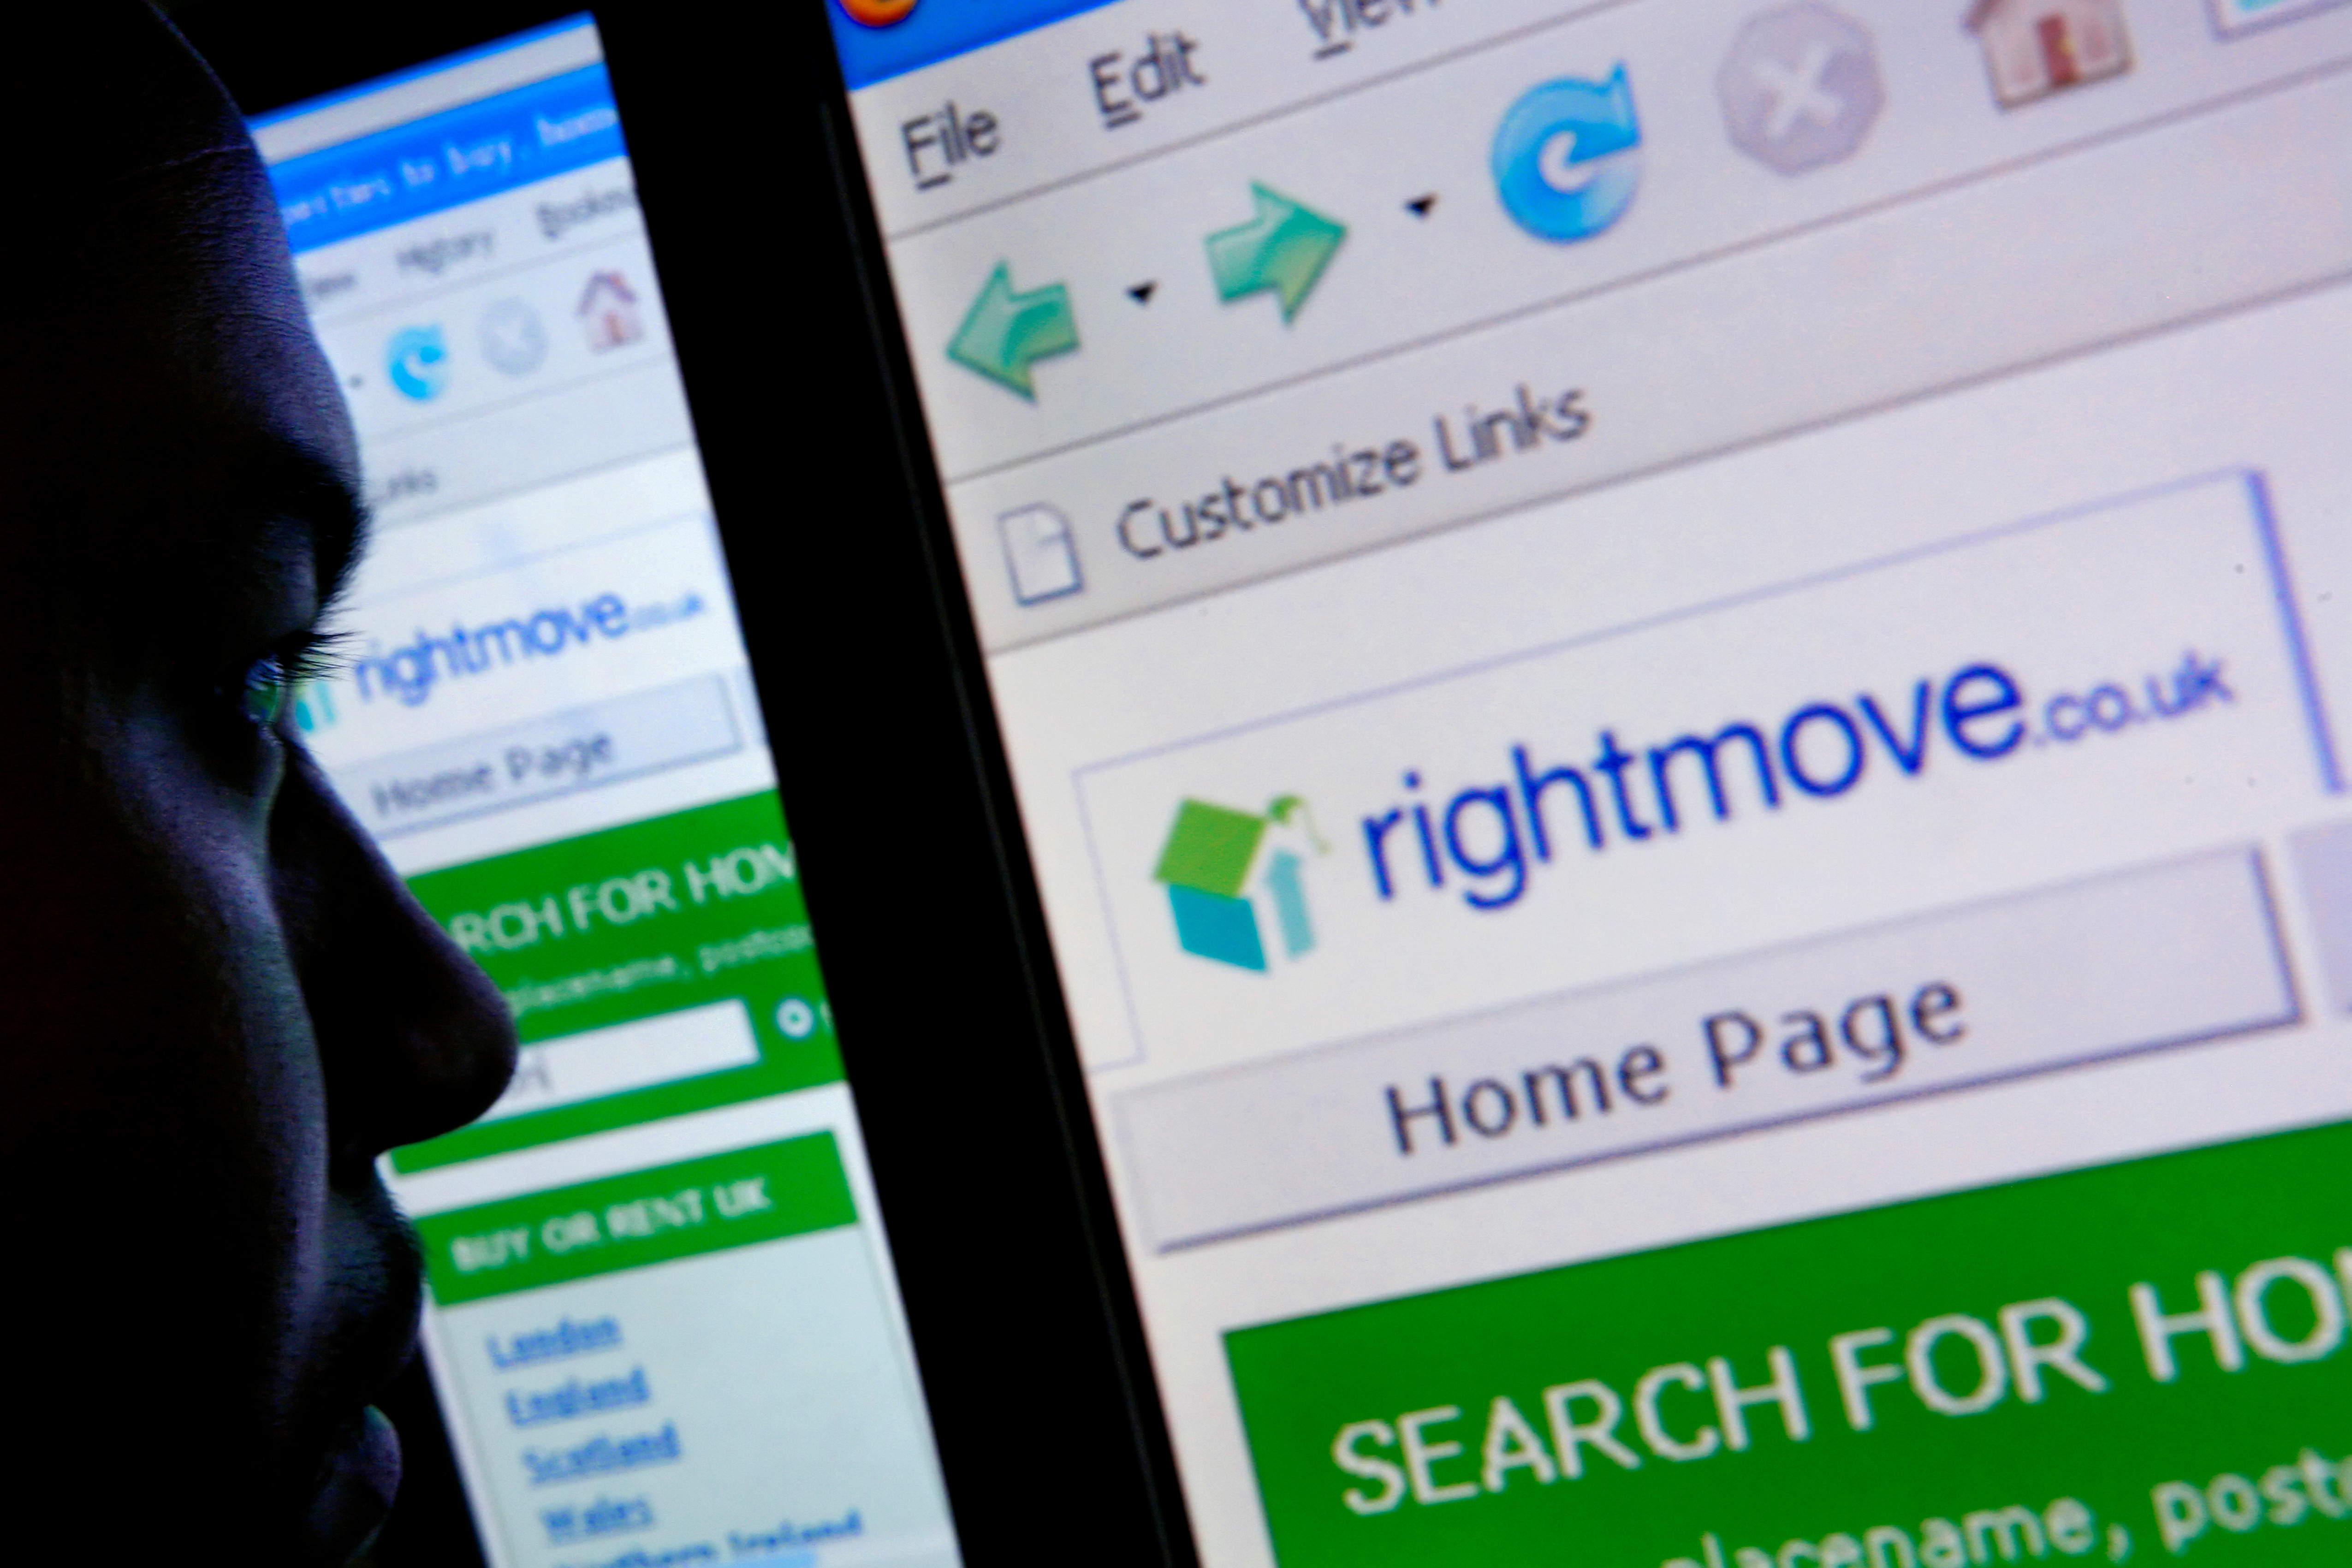 Rightmove say the site's busiest day is December 30 as people look to move house in the New Year